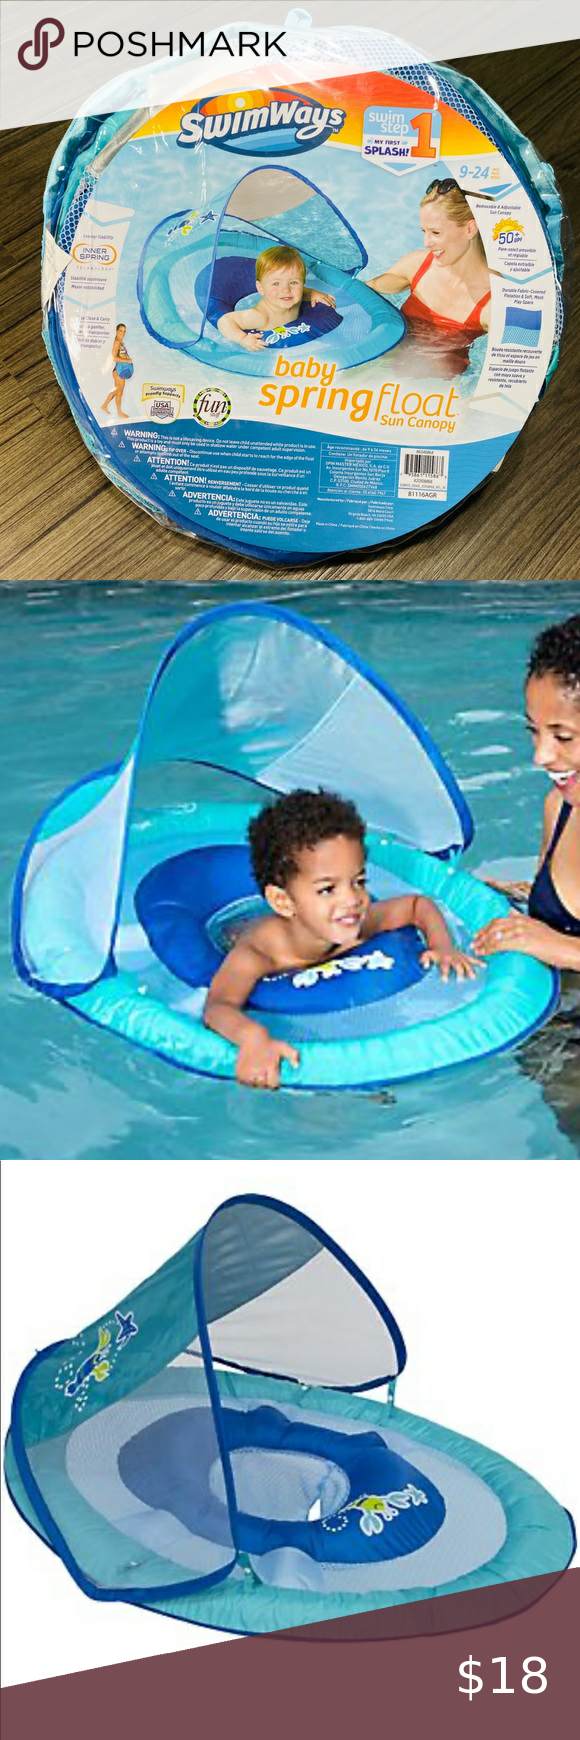 Swimways Baby Spring Float With Canopy Blue With Ducks : swimways, spring, float, canopy, ducks, Swimway, Spring, Float, Canopy, Baby,, Canopy,, Child, Safety